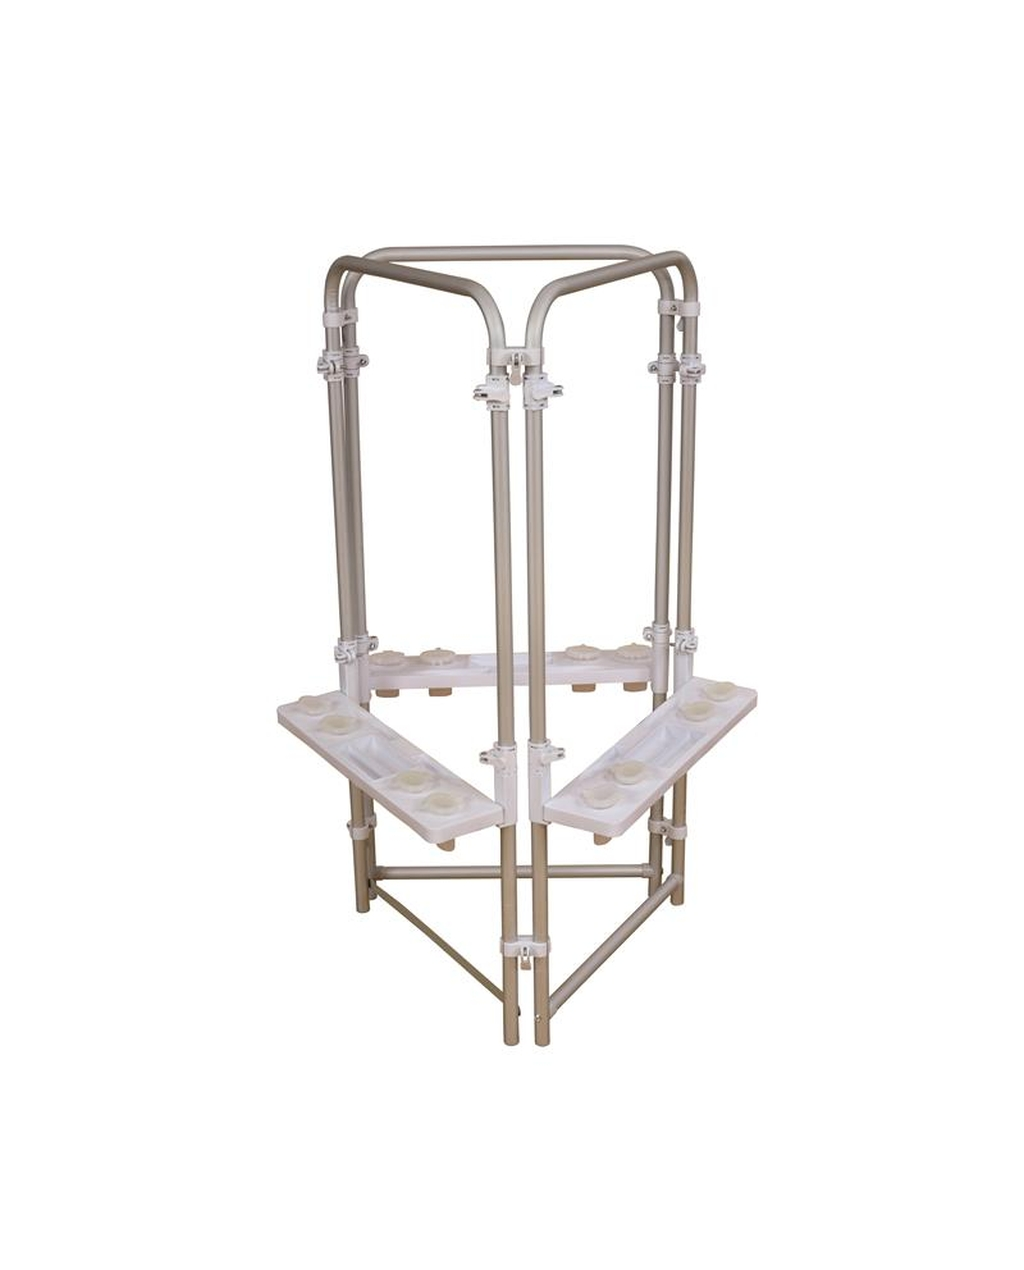 Aluminium Easel - Triple Leg Set - 3 Sided